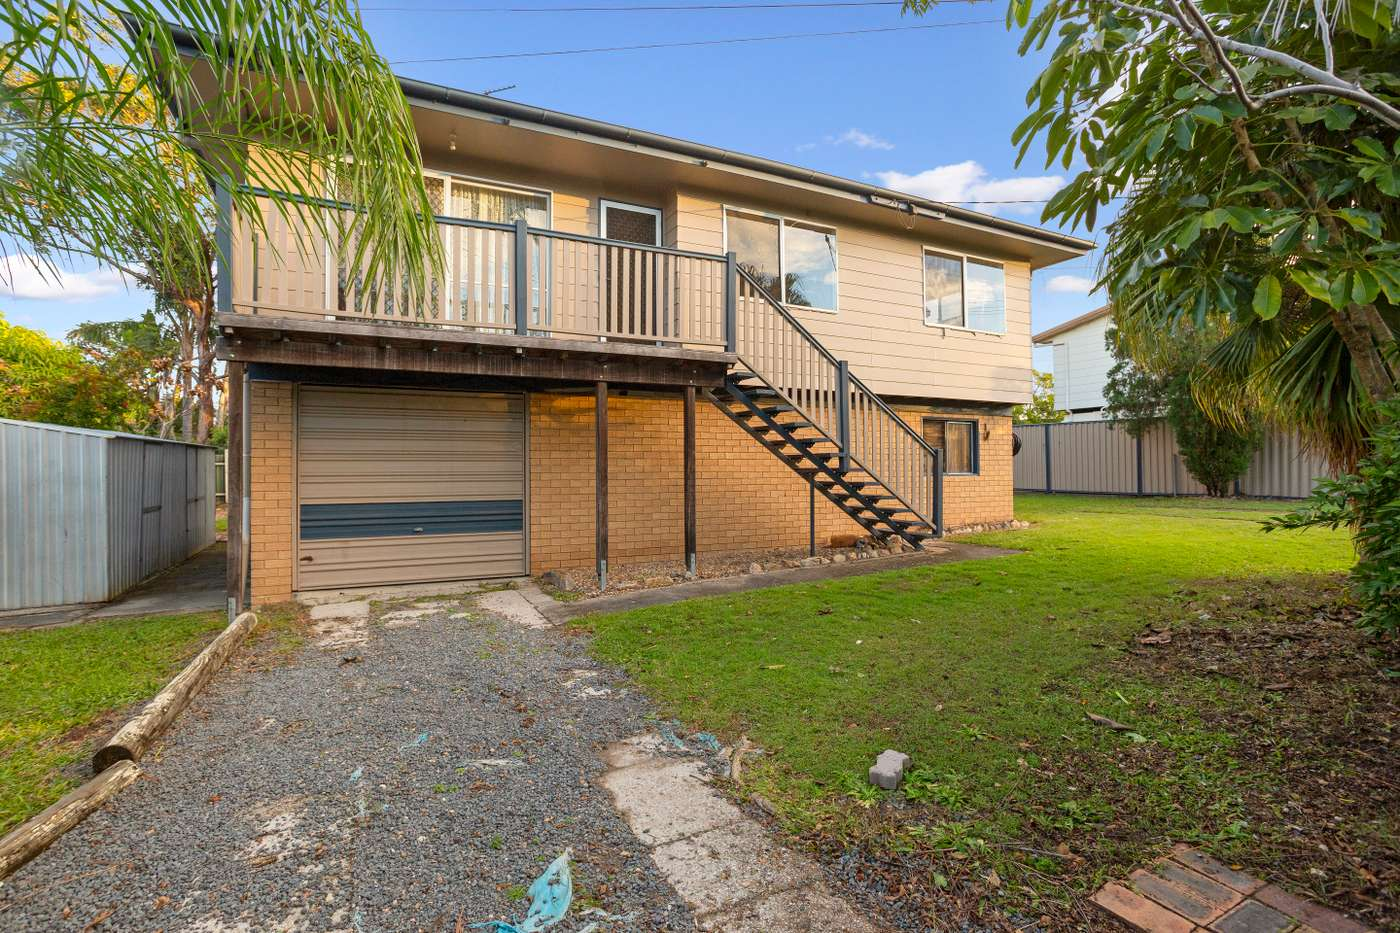 Main view of Homely house listing, 5 Blackton Street, Logan Central, QLD 4114